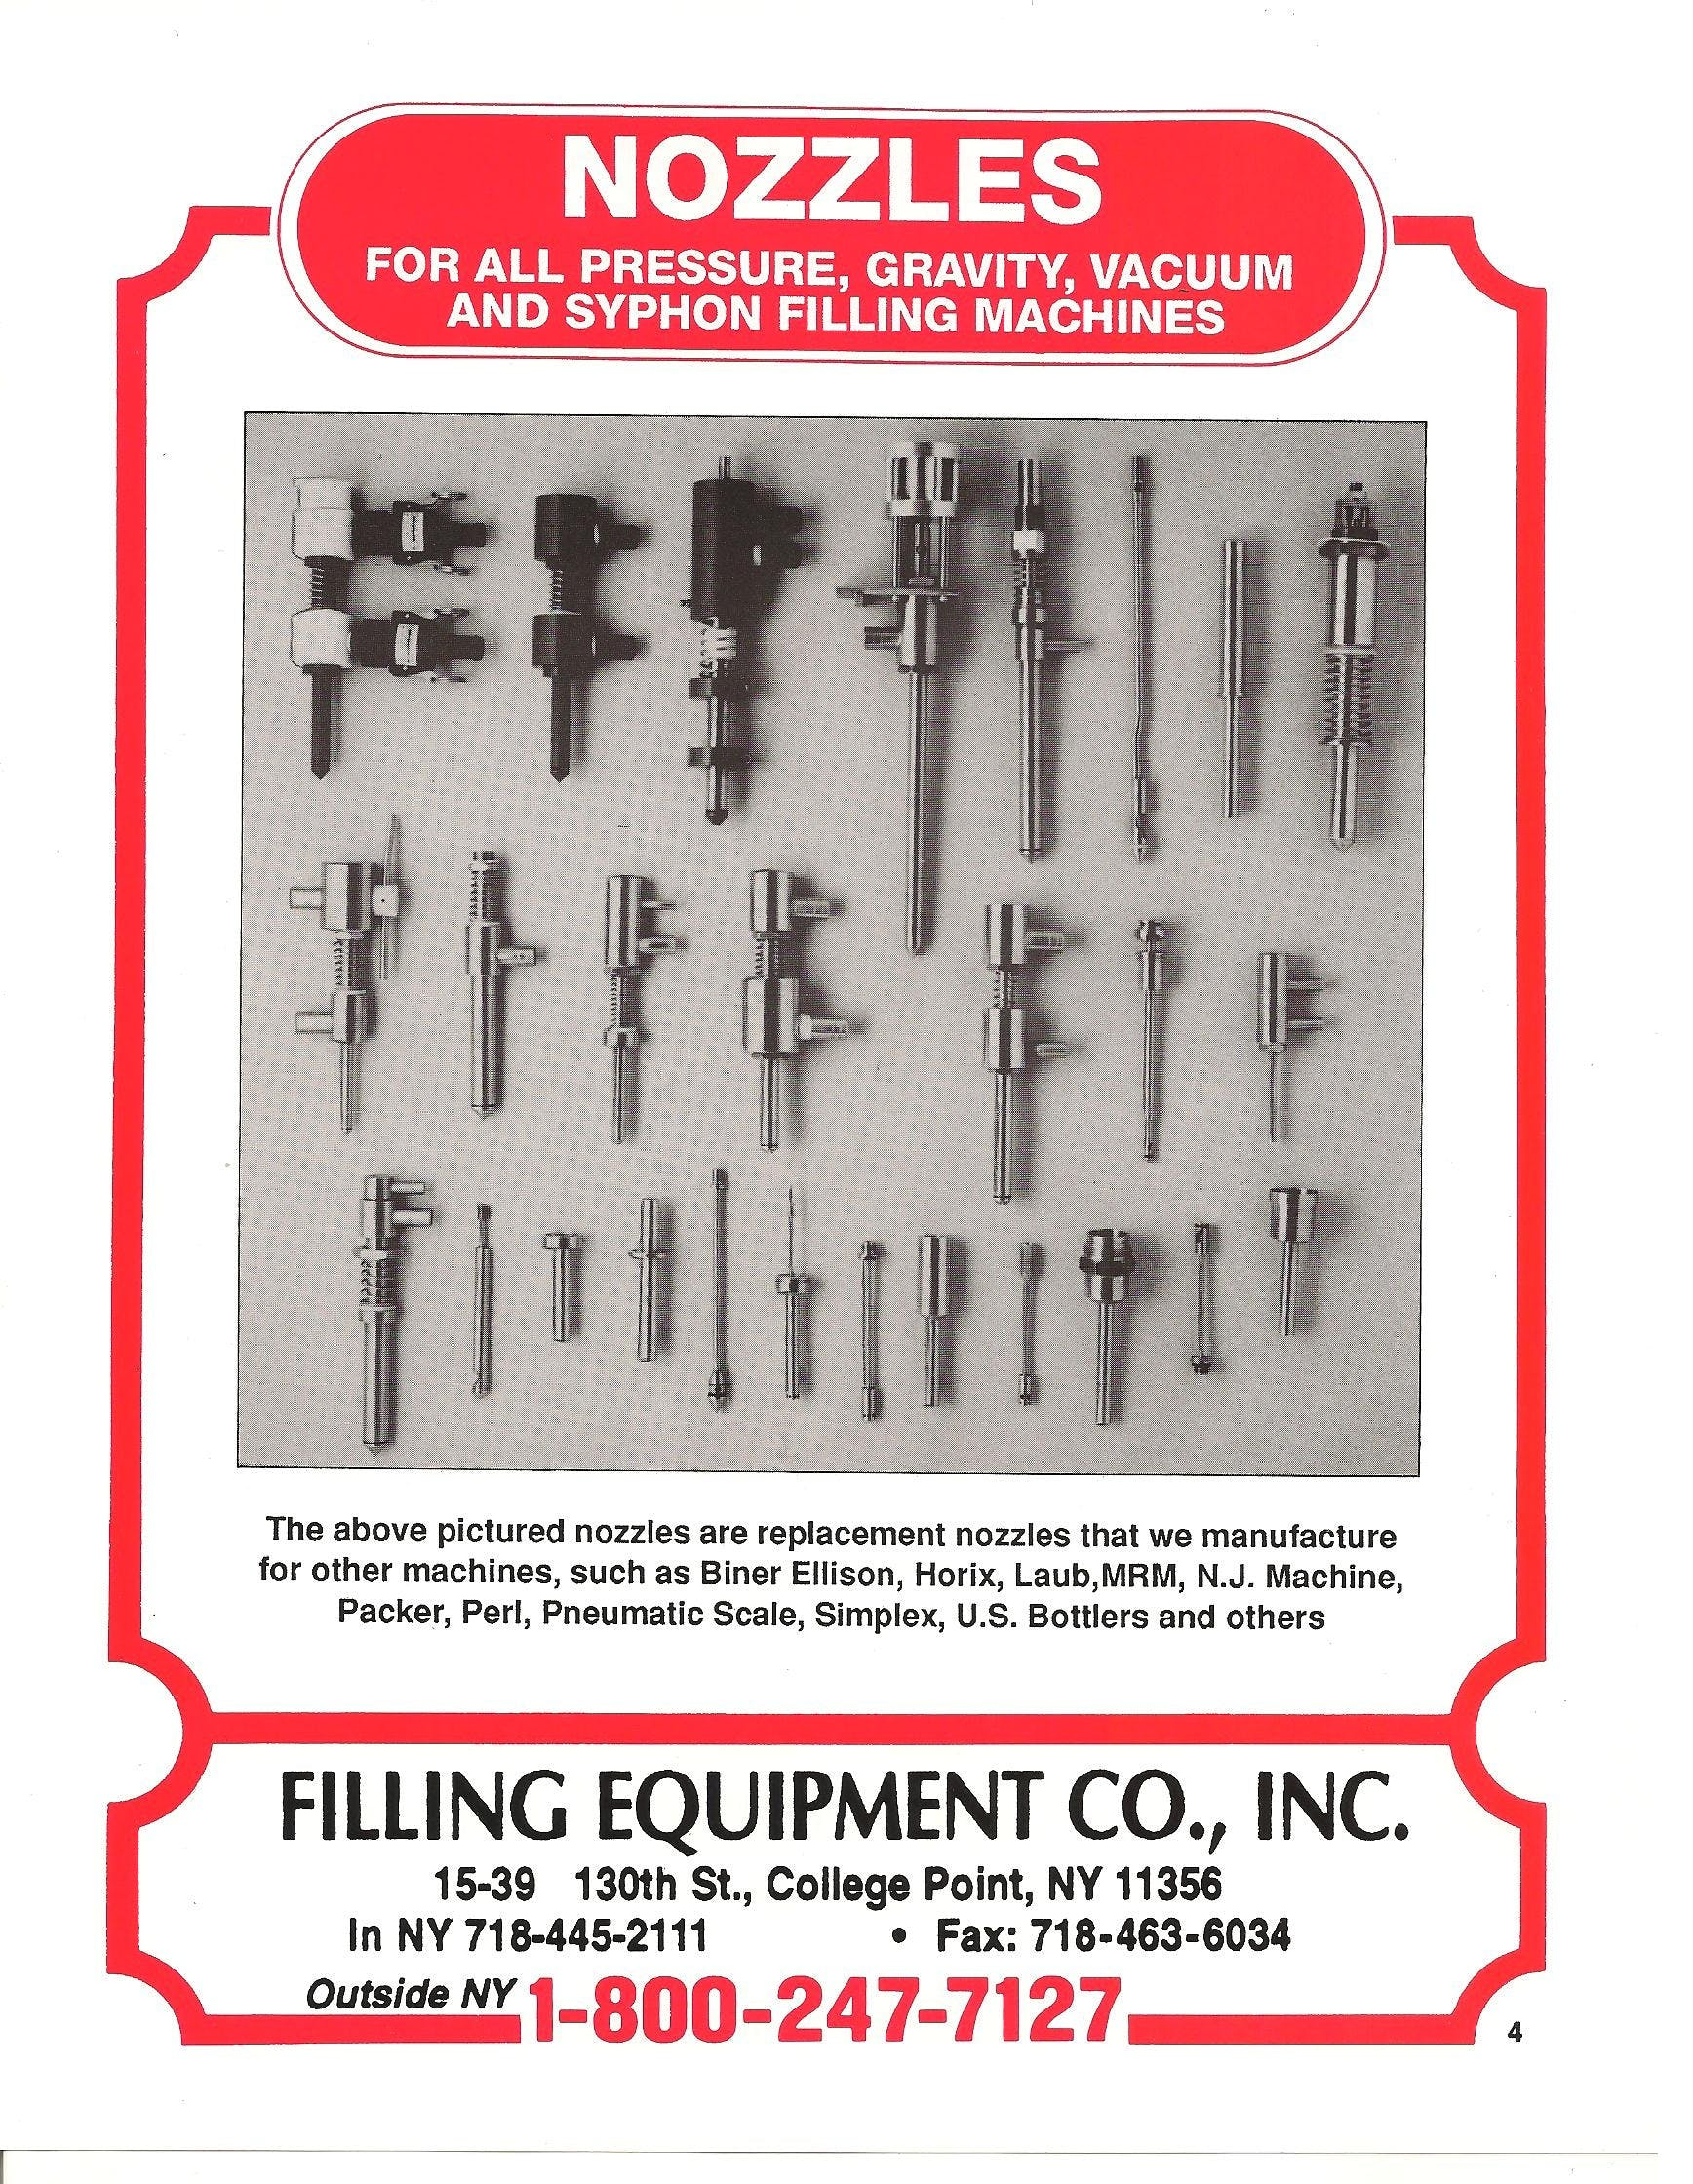 Liquid filling nozzles Packaging equipment sold by Filling Equipment Co., Inc.